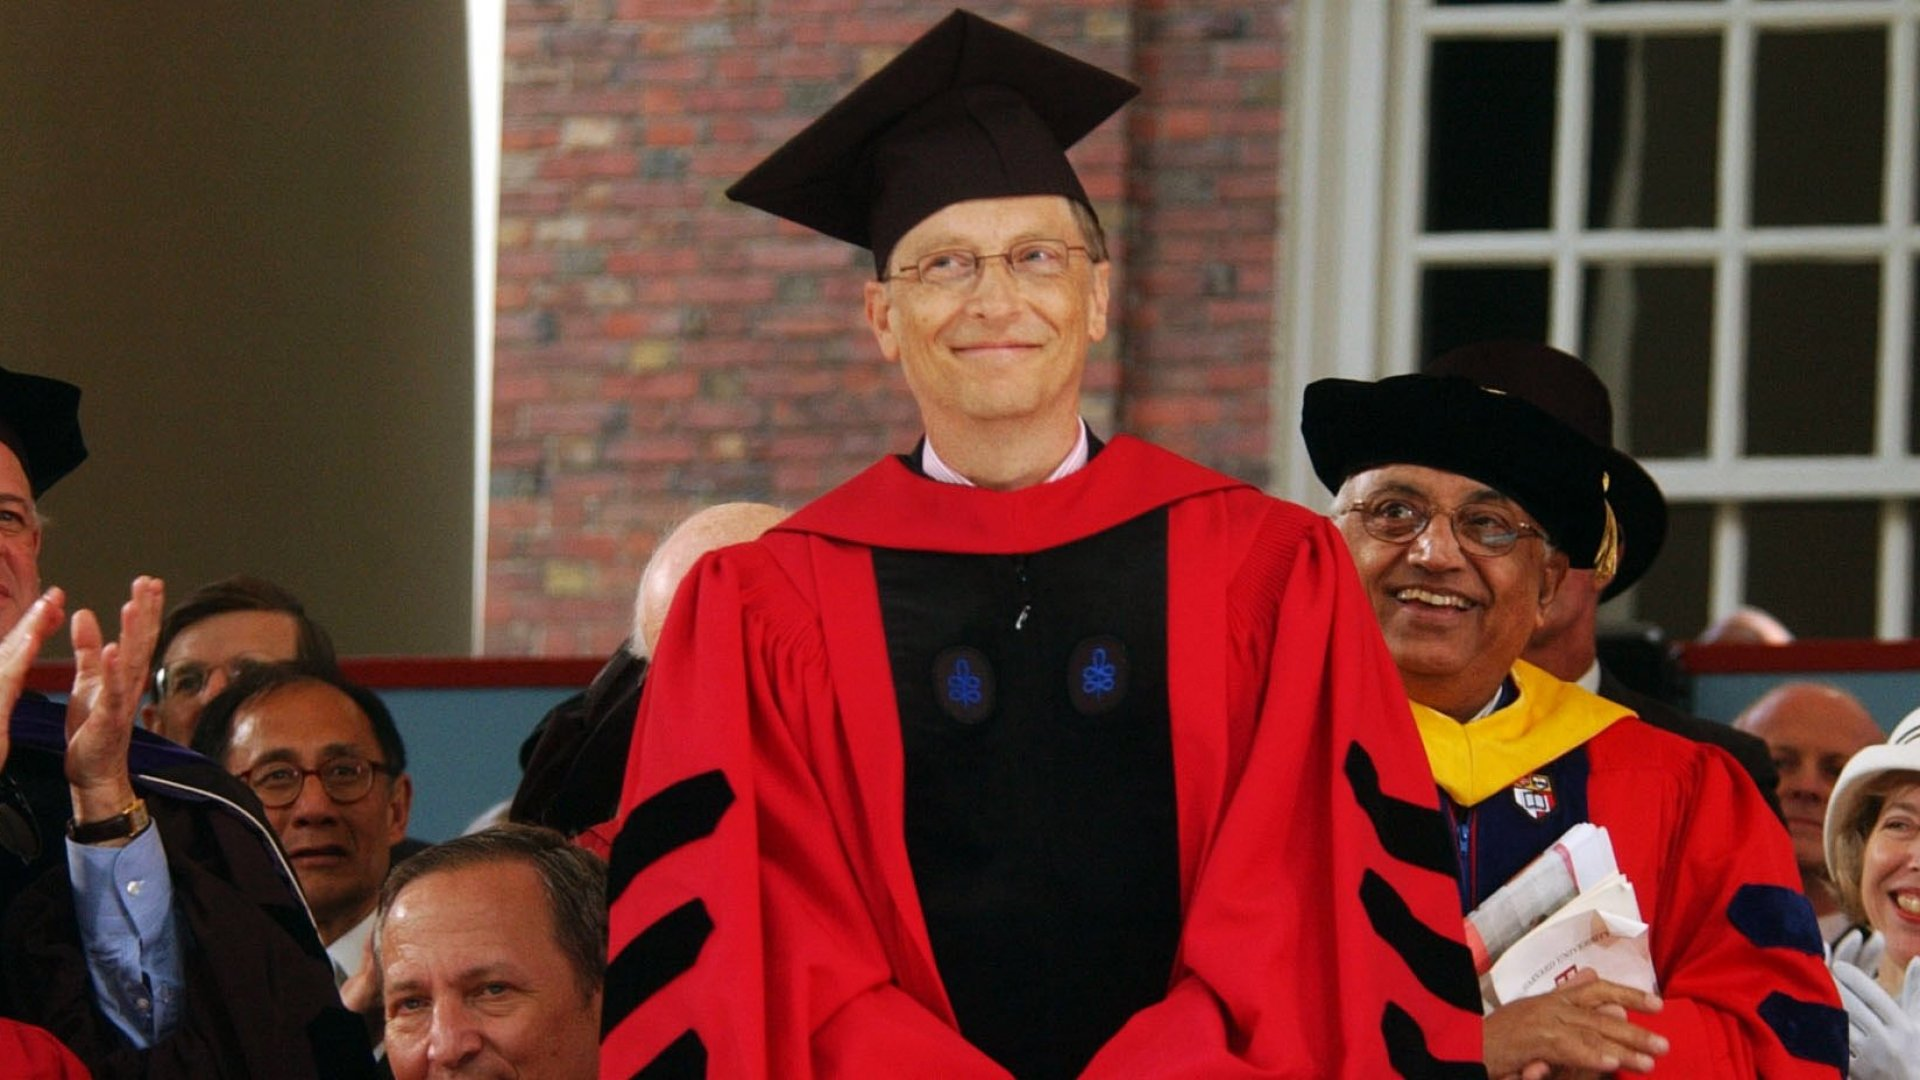 Bill Gates Tweeted a Commencement Speech for the Class of 2017